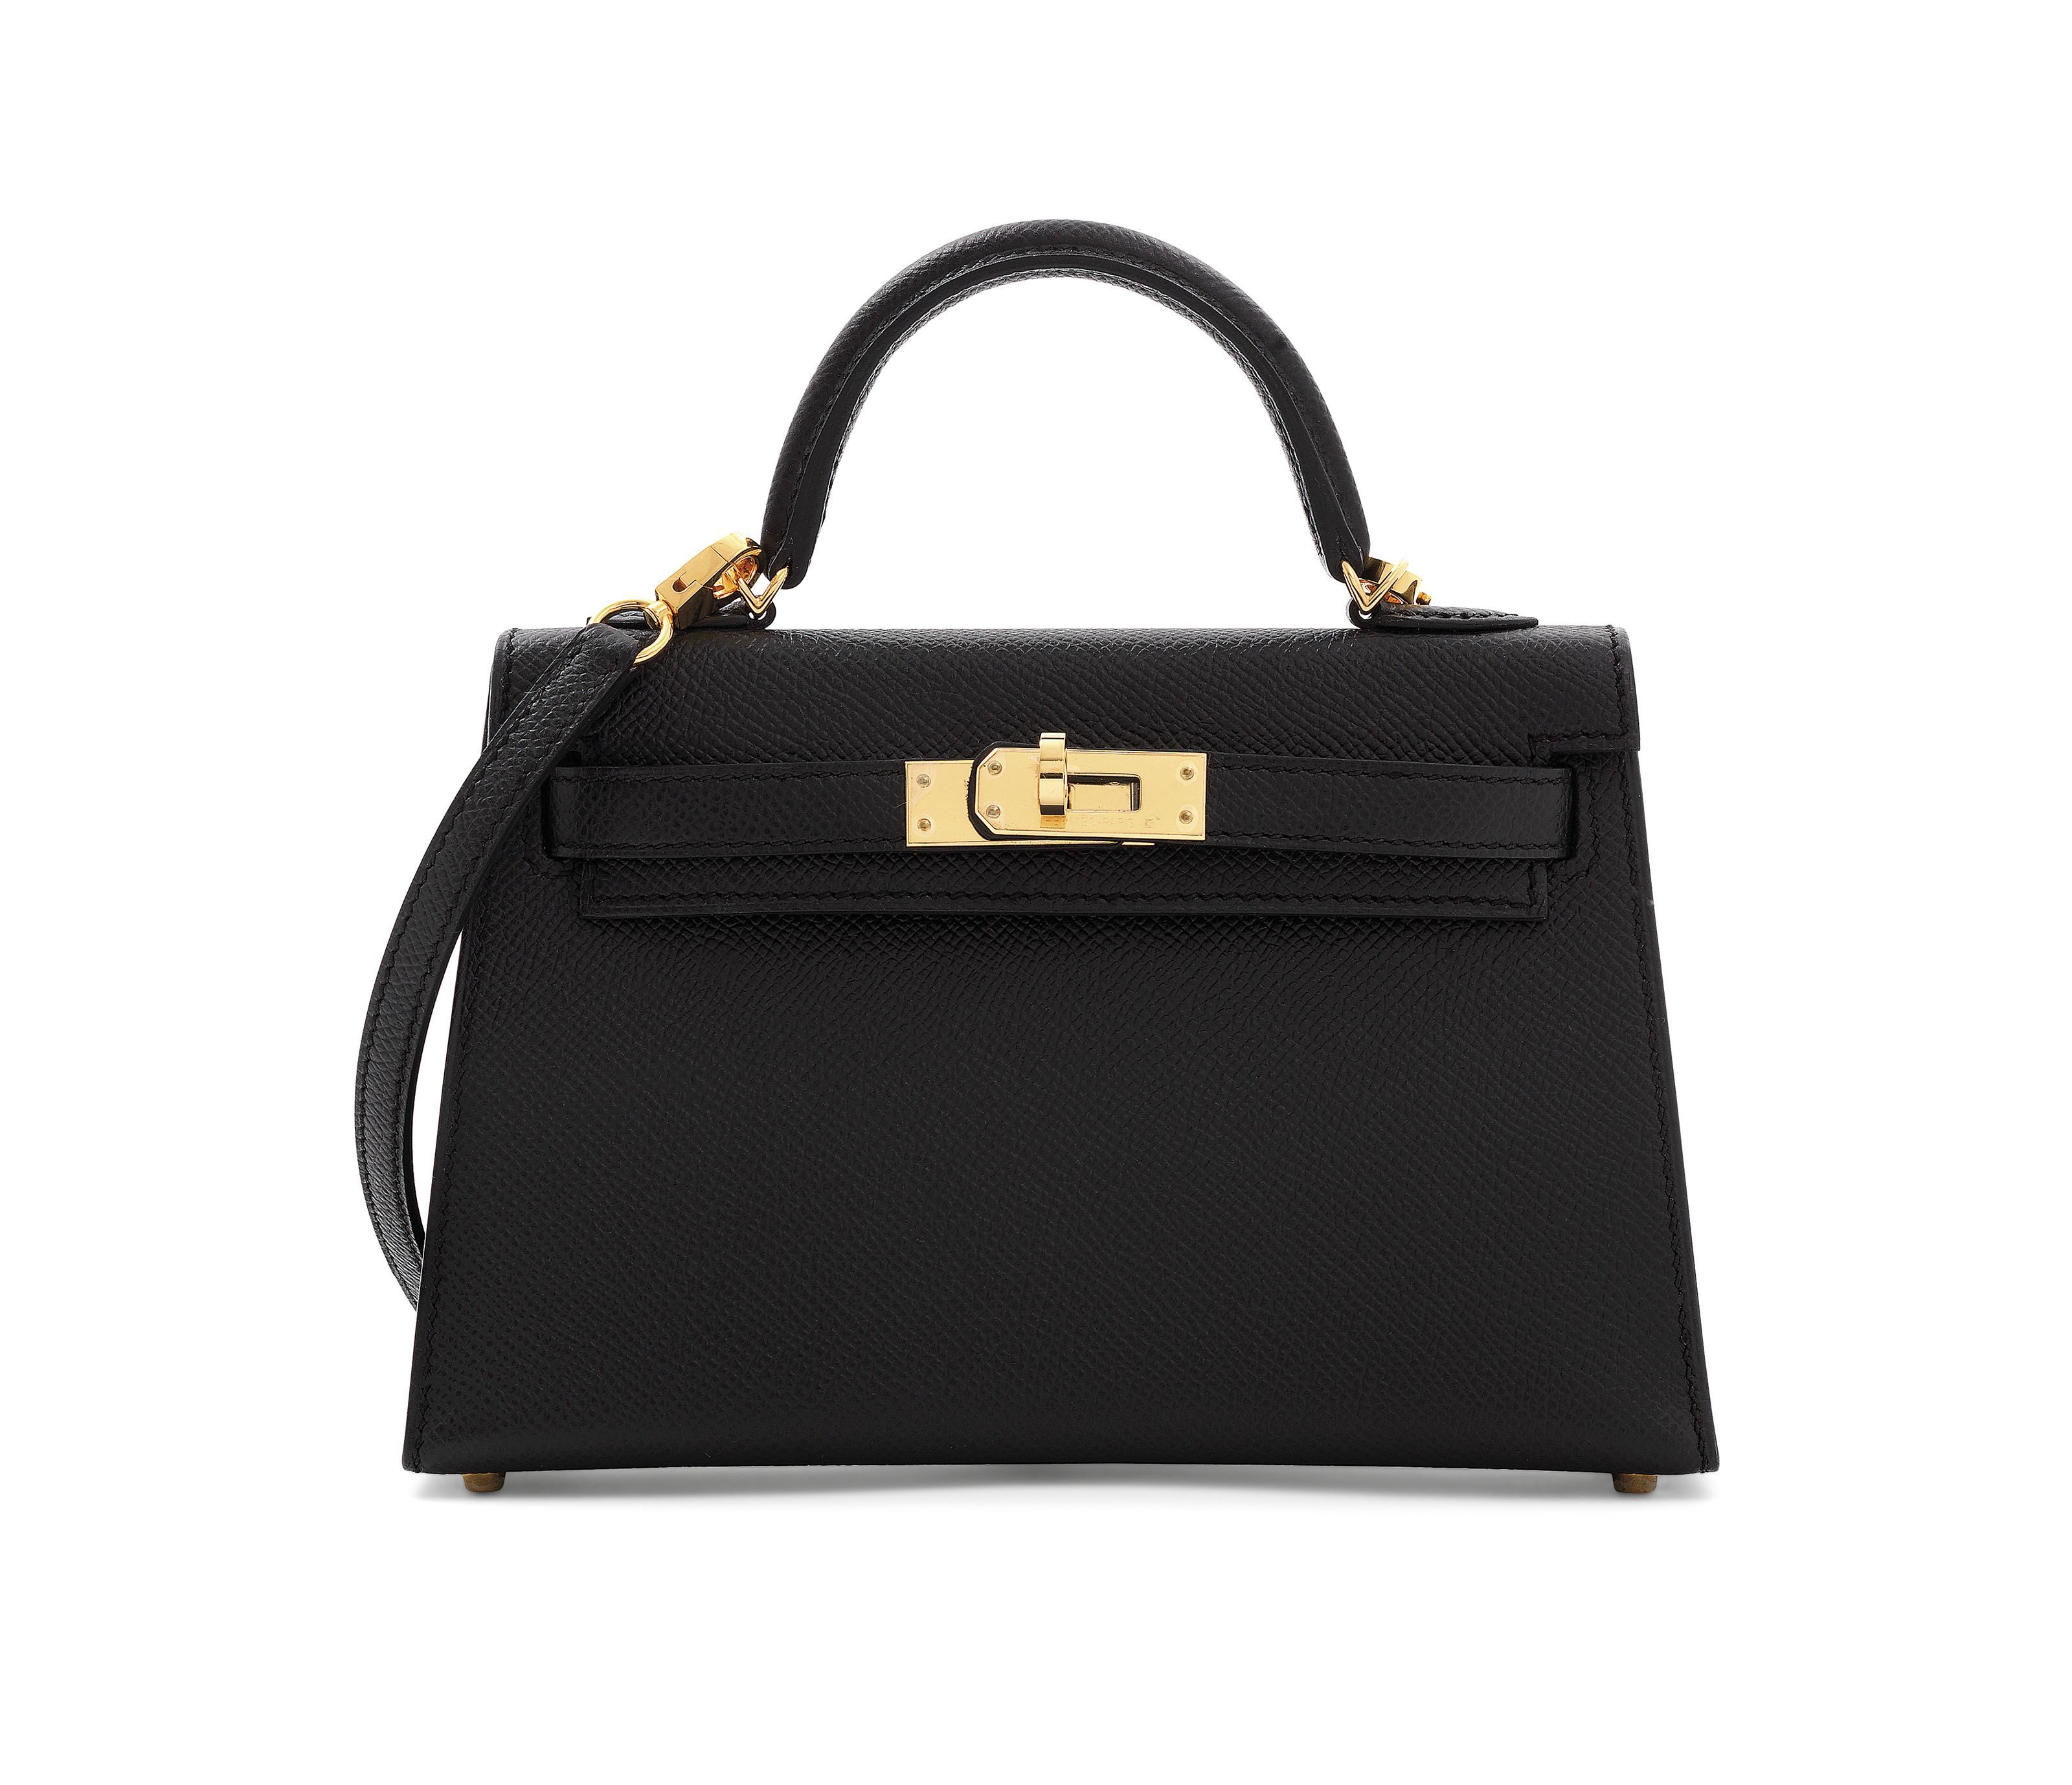 7432d89f6fe0 A BLACK EPSOM LEATHER SELLIER MINI KELLY 20 II WITH GOLD HARDWARE ...